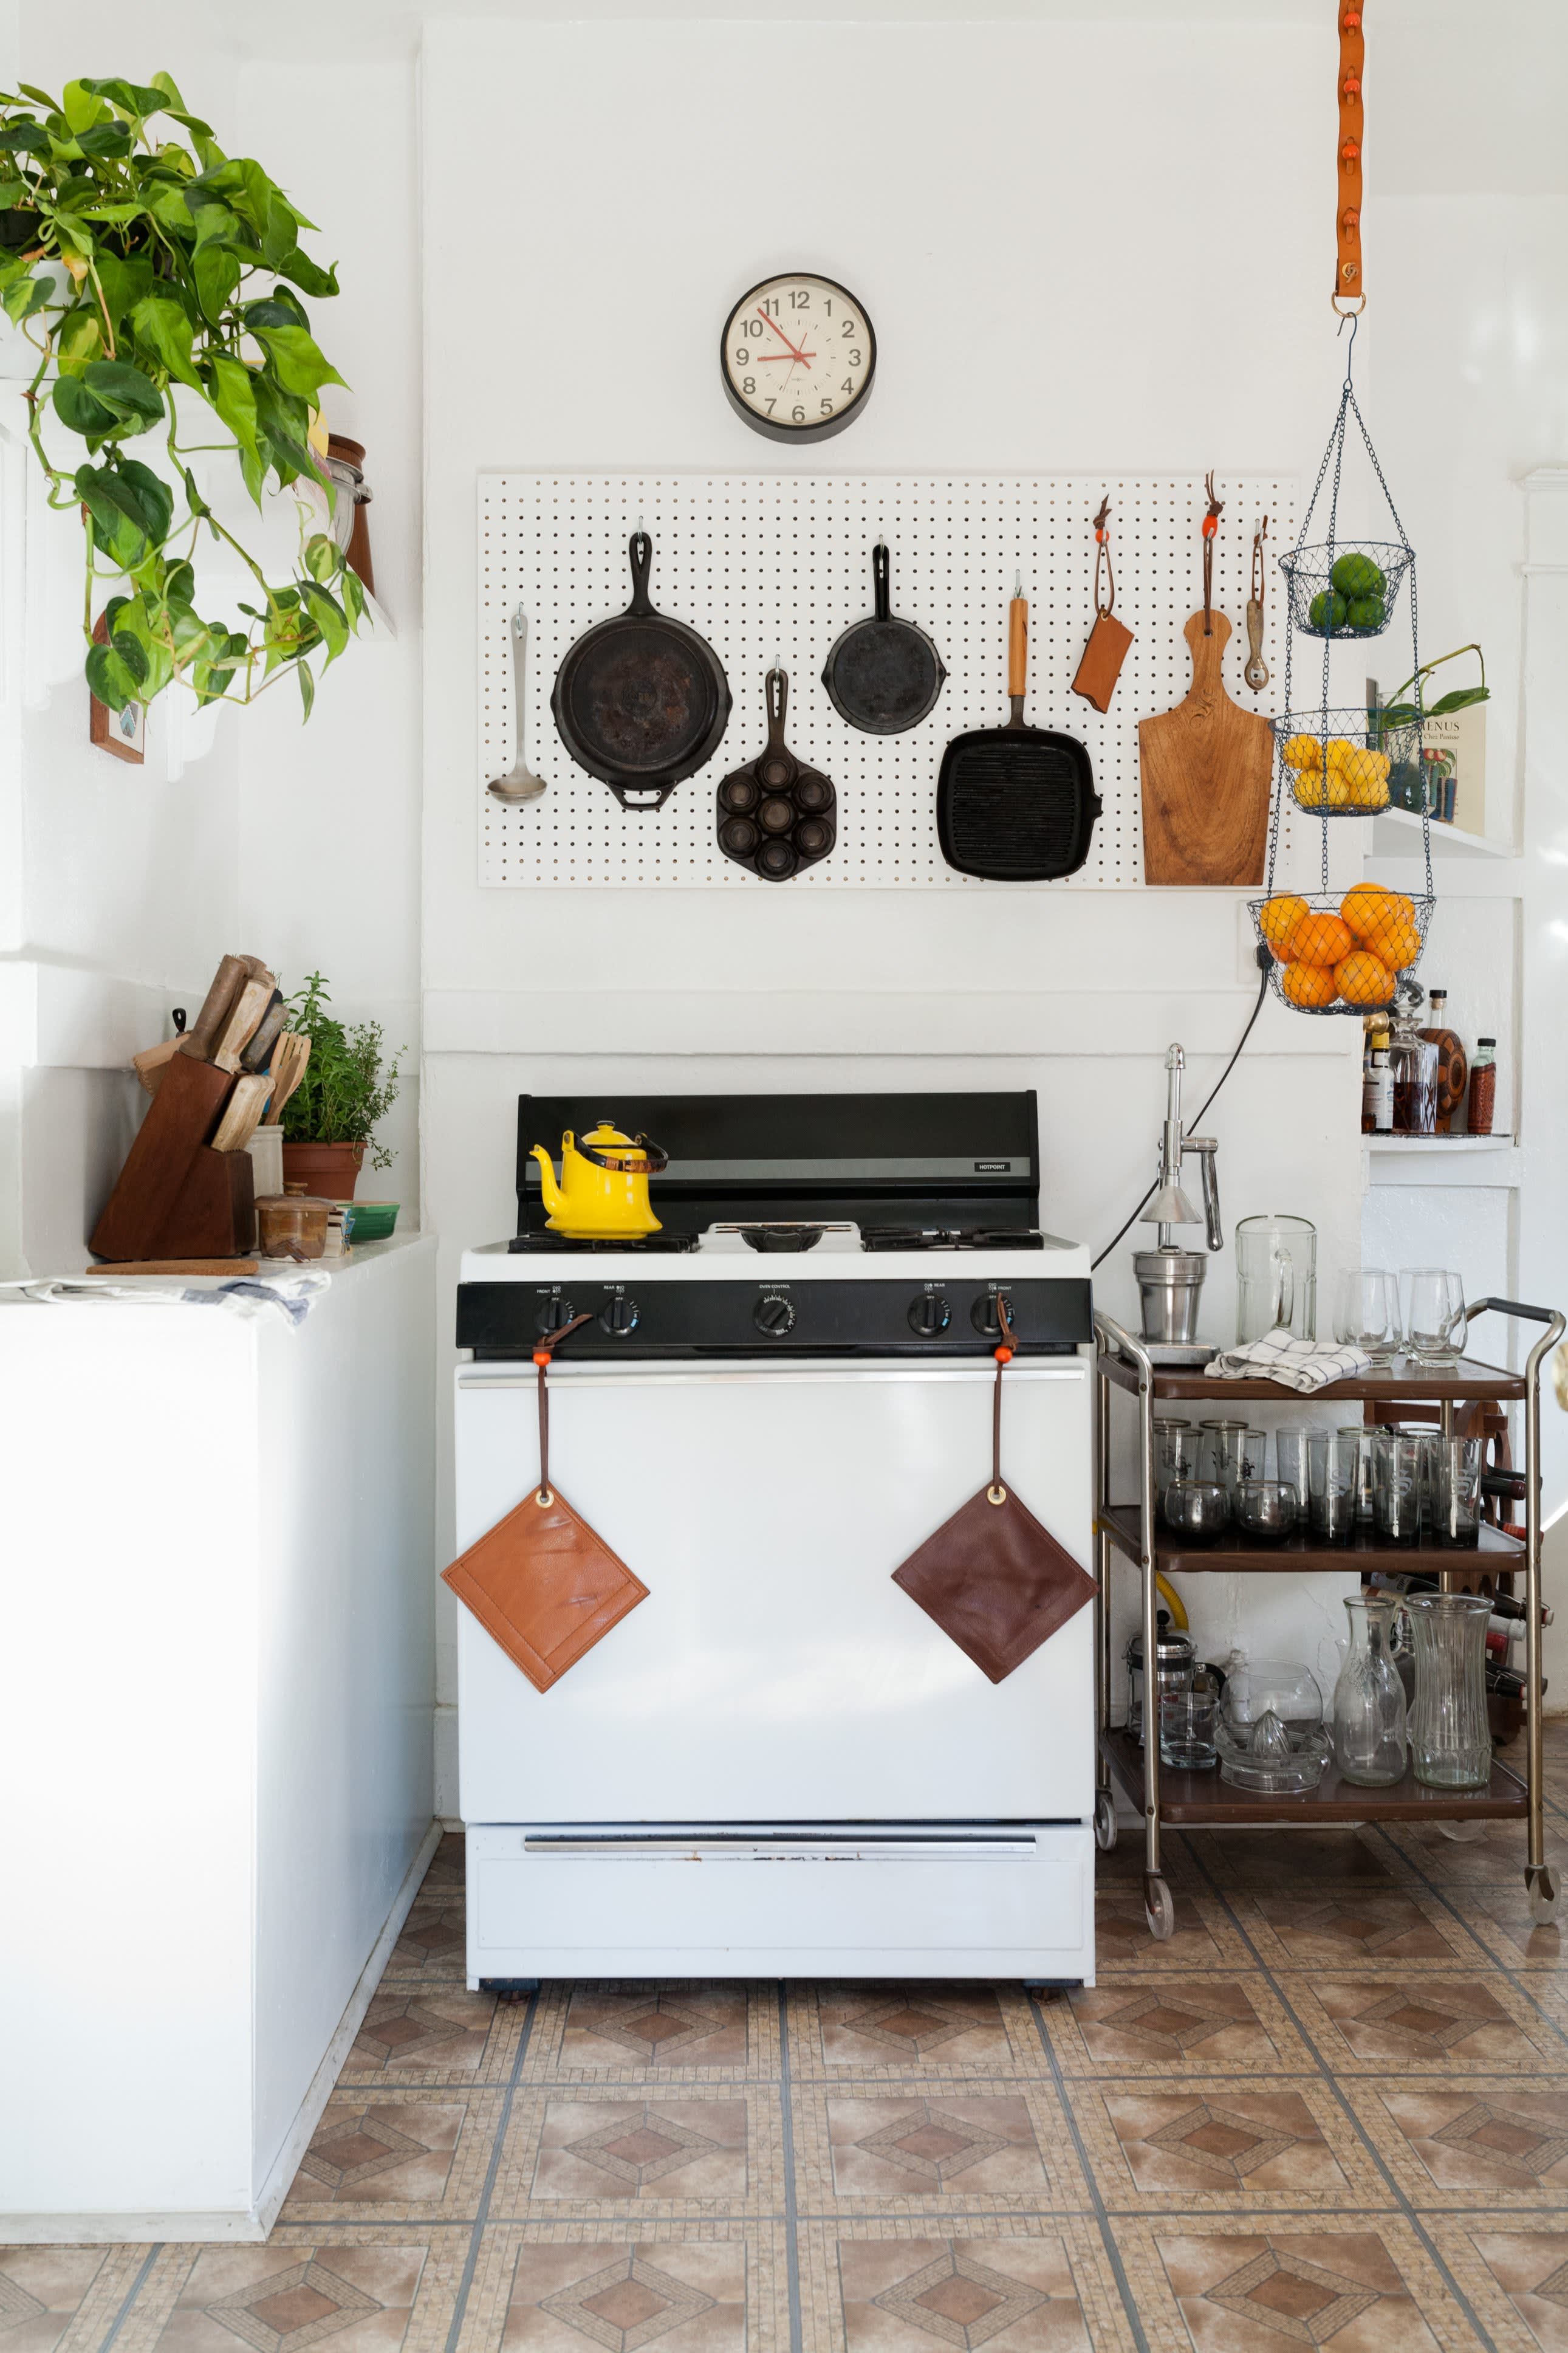 Where I Cook: Leather Craftsman Steven Soria's Rental Kitchen: gallery image 3